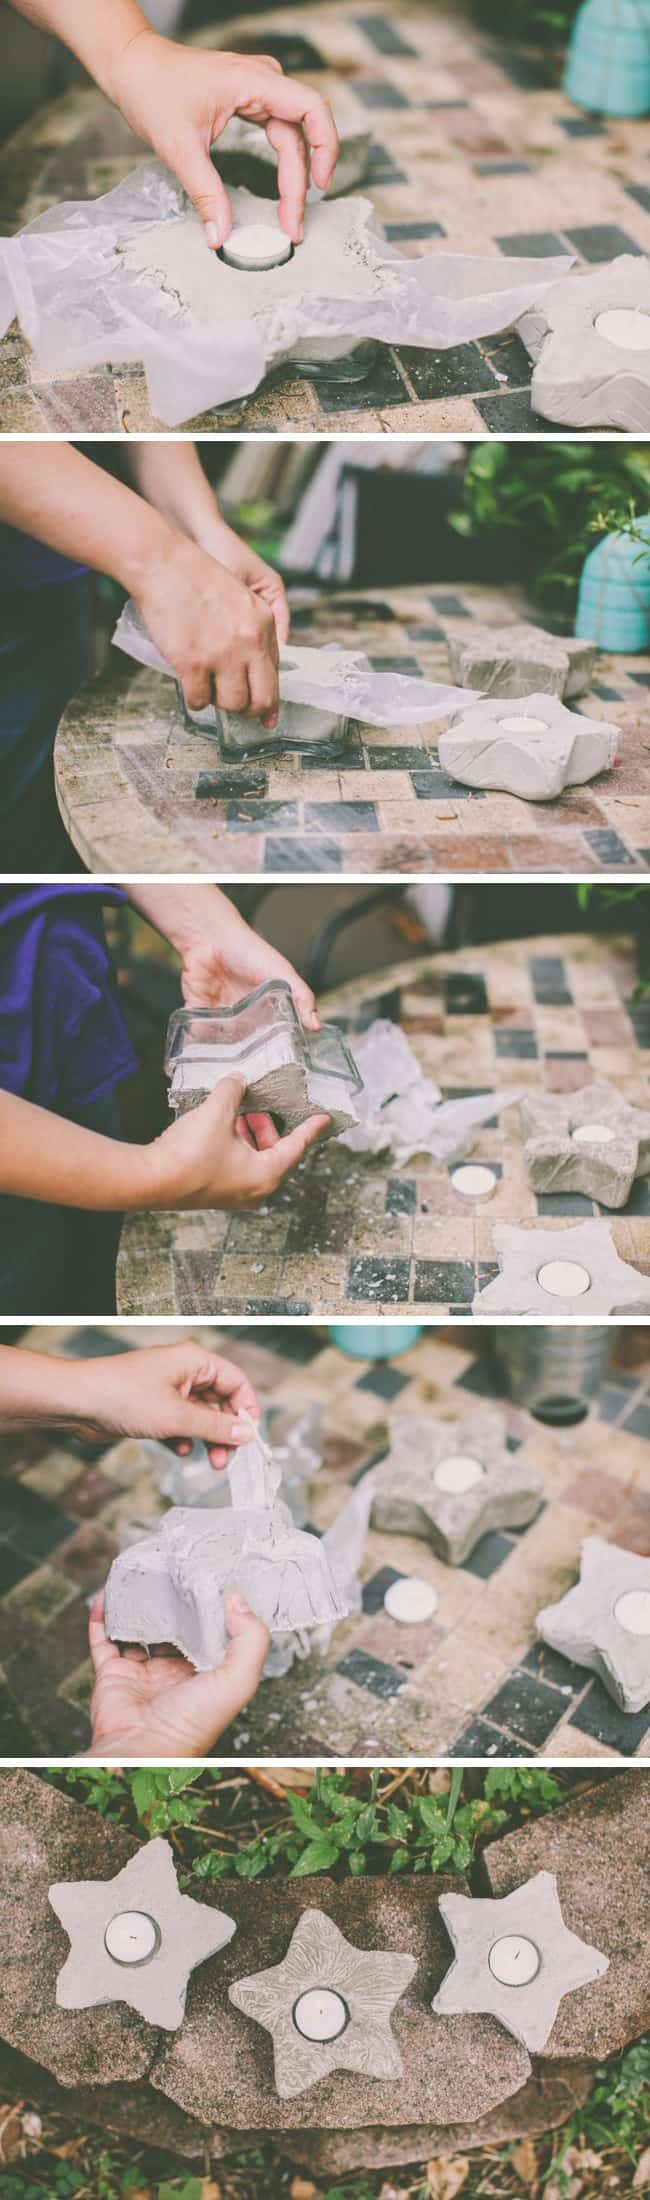 How to make votives with cement | Henry Happened